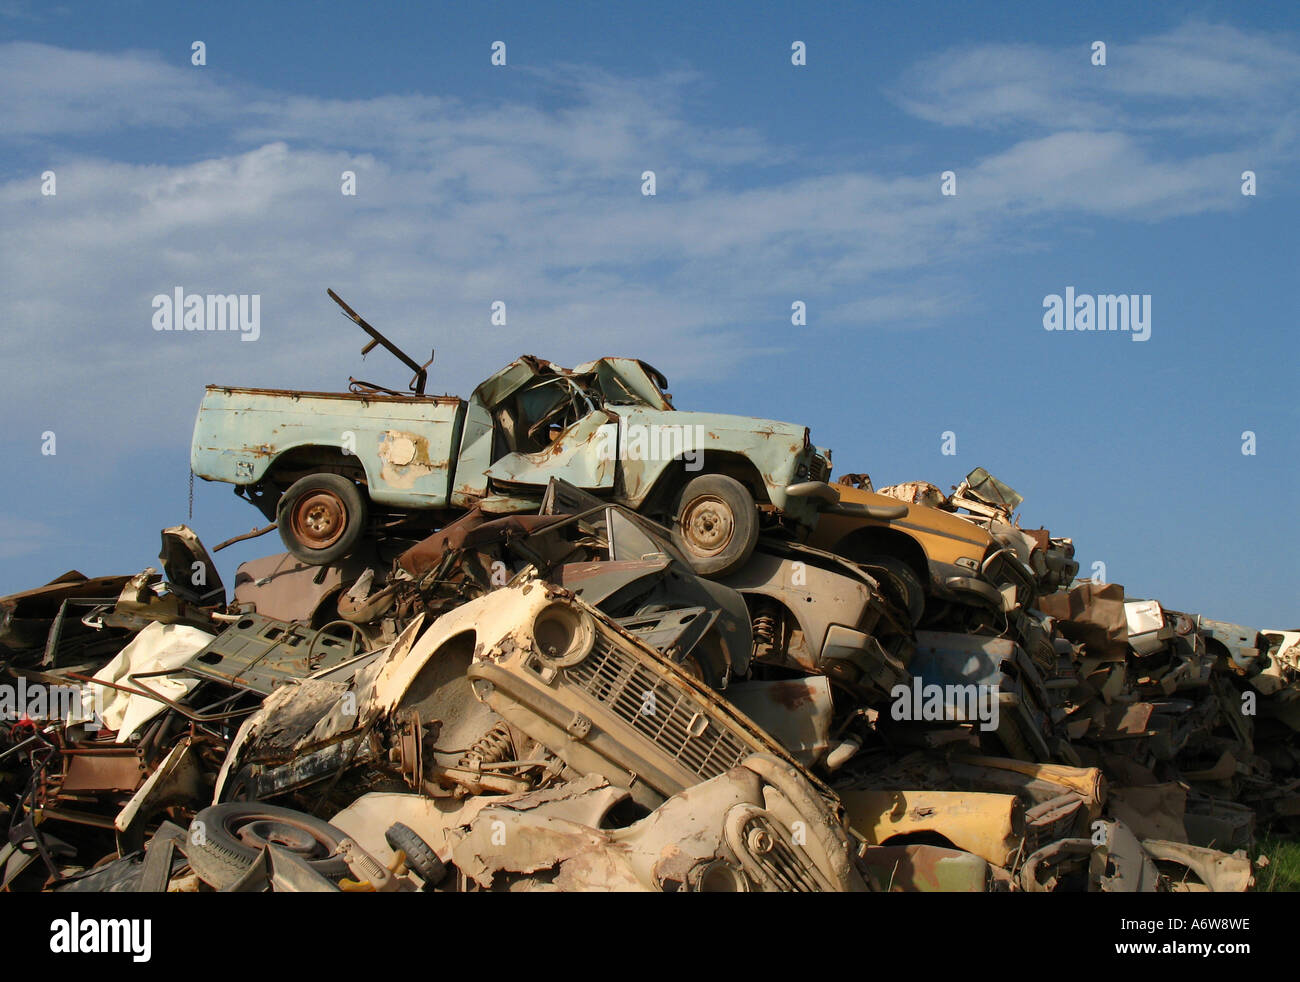 Stock photo of a car dump with wrecked cars Stock Photo: 6658973 - Alamy